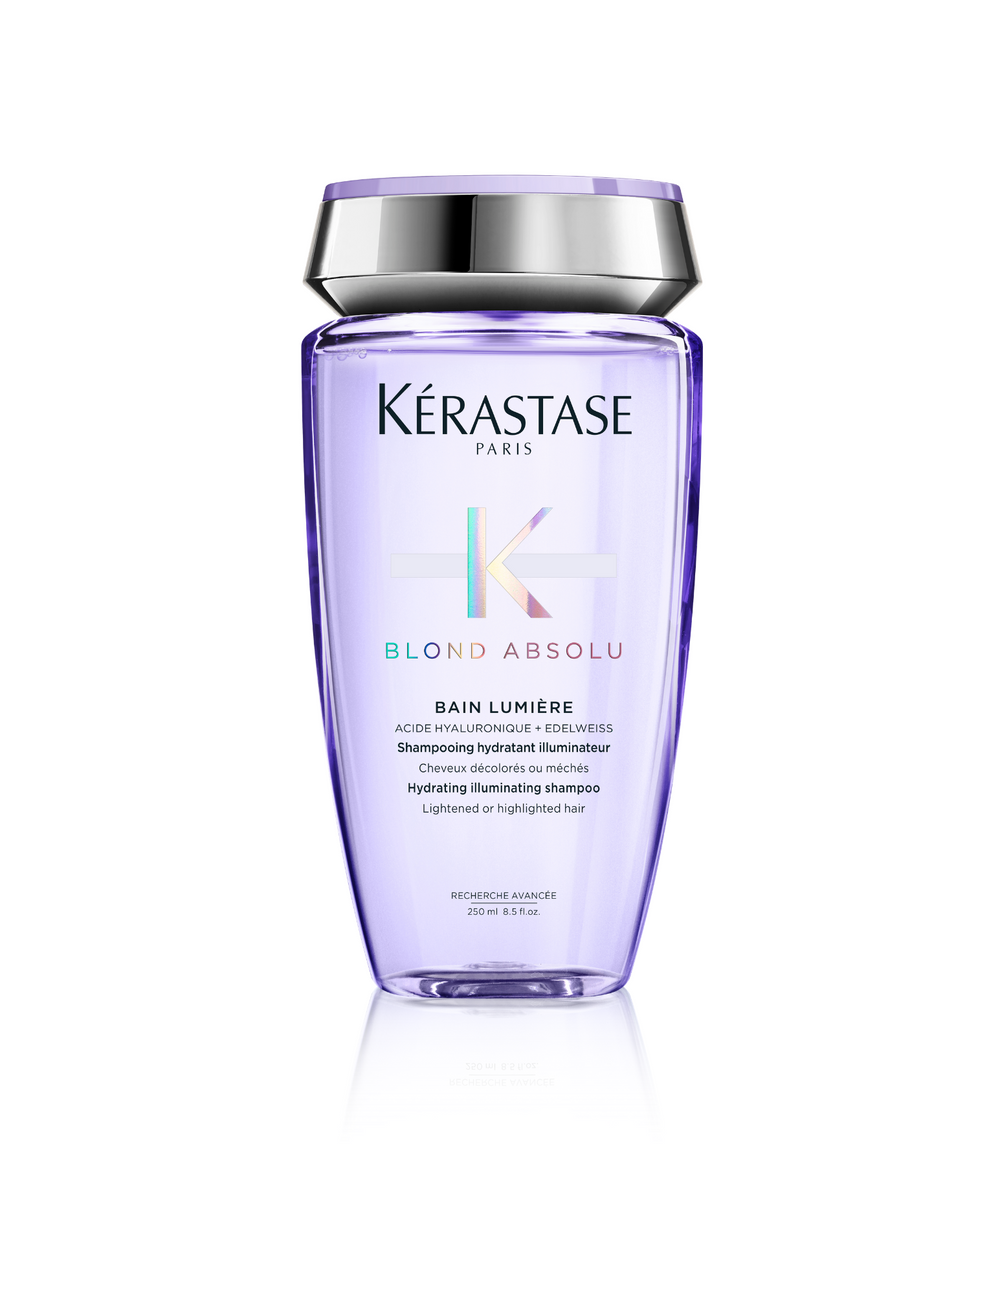 Blond Absolu : Hydratation Et Brillance 24/7